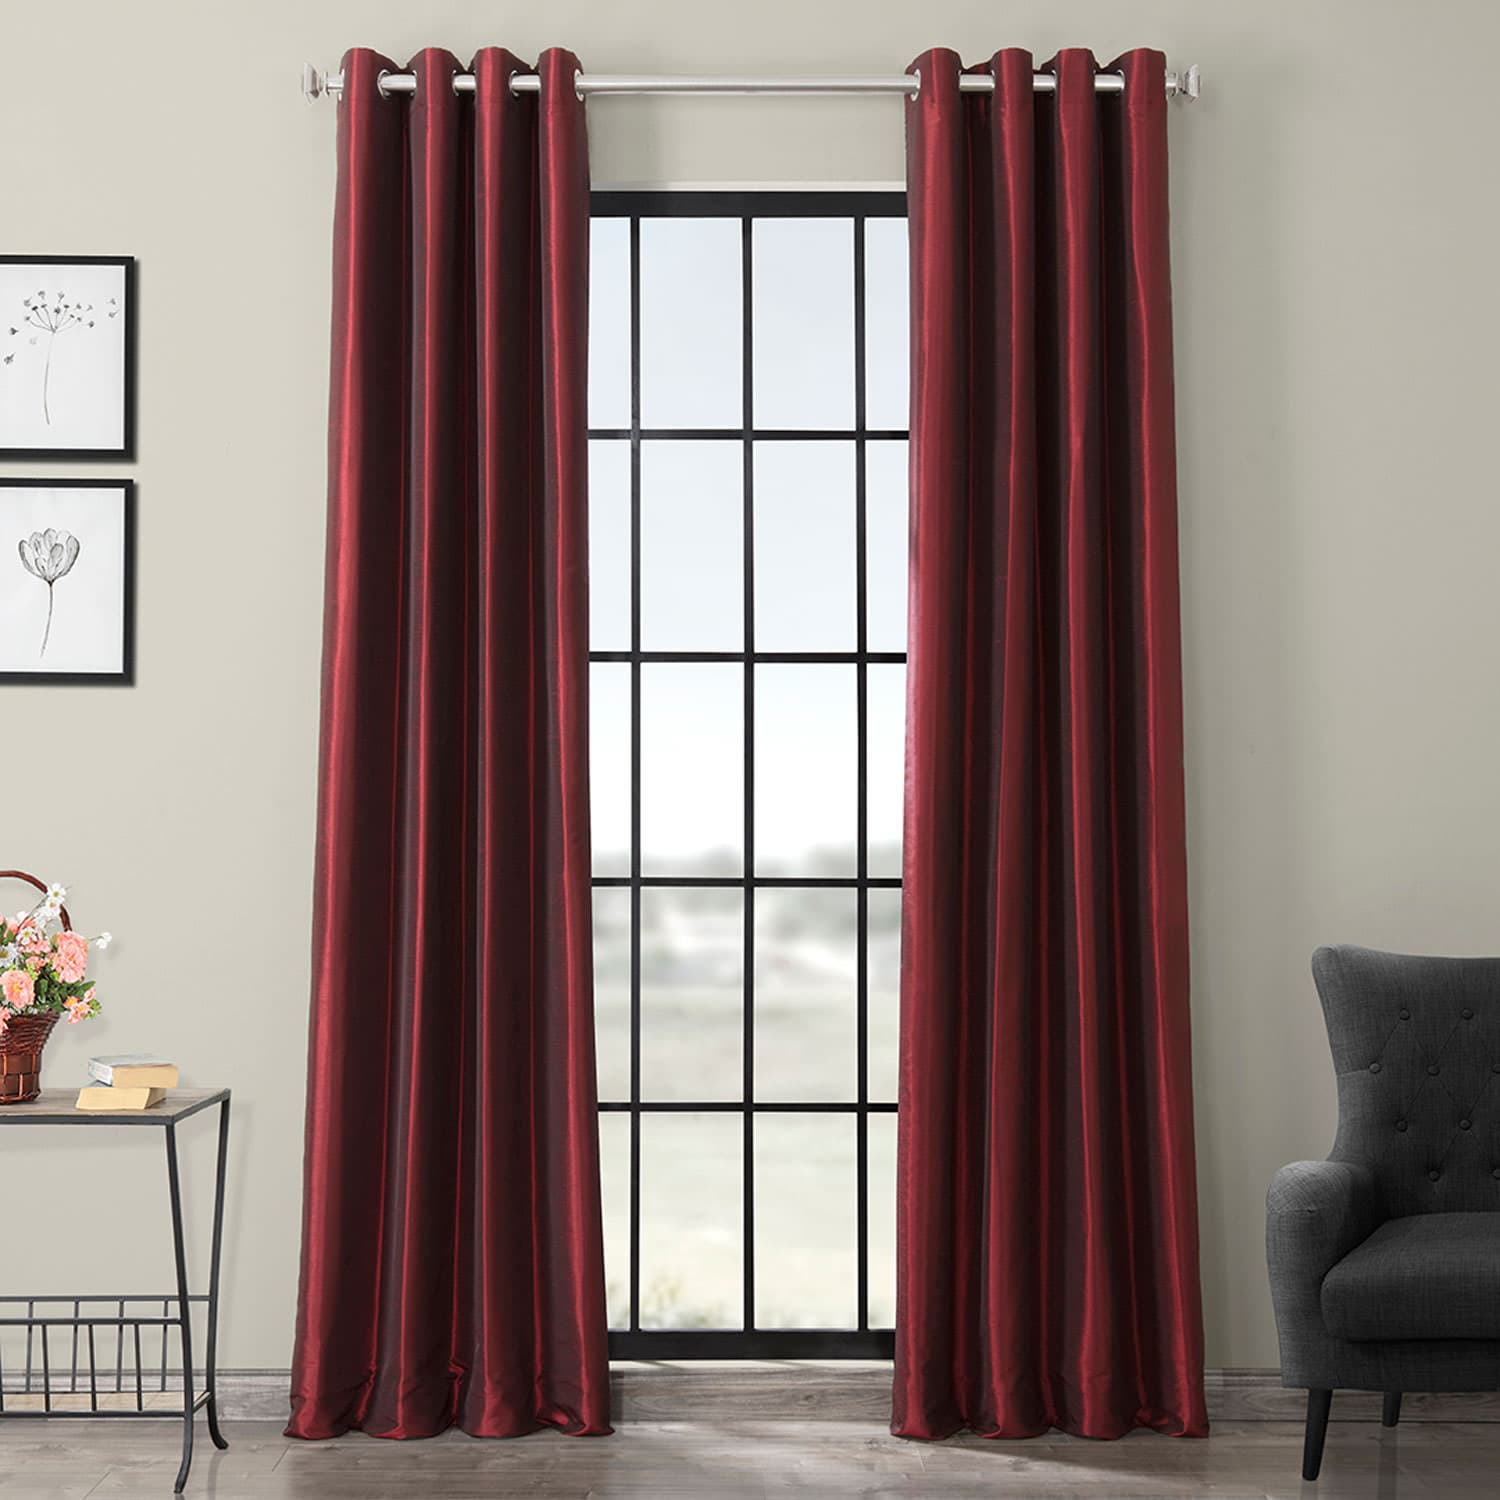 Ruby Grommet Blackout Vintage Textured Faux Dupioni Silk Curtain With Regard To Vintage Faux Textured Dupioni Silk Curtain Panels (Gallery 16 of 30)